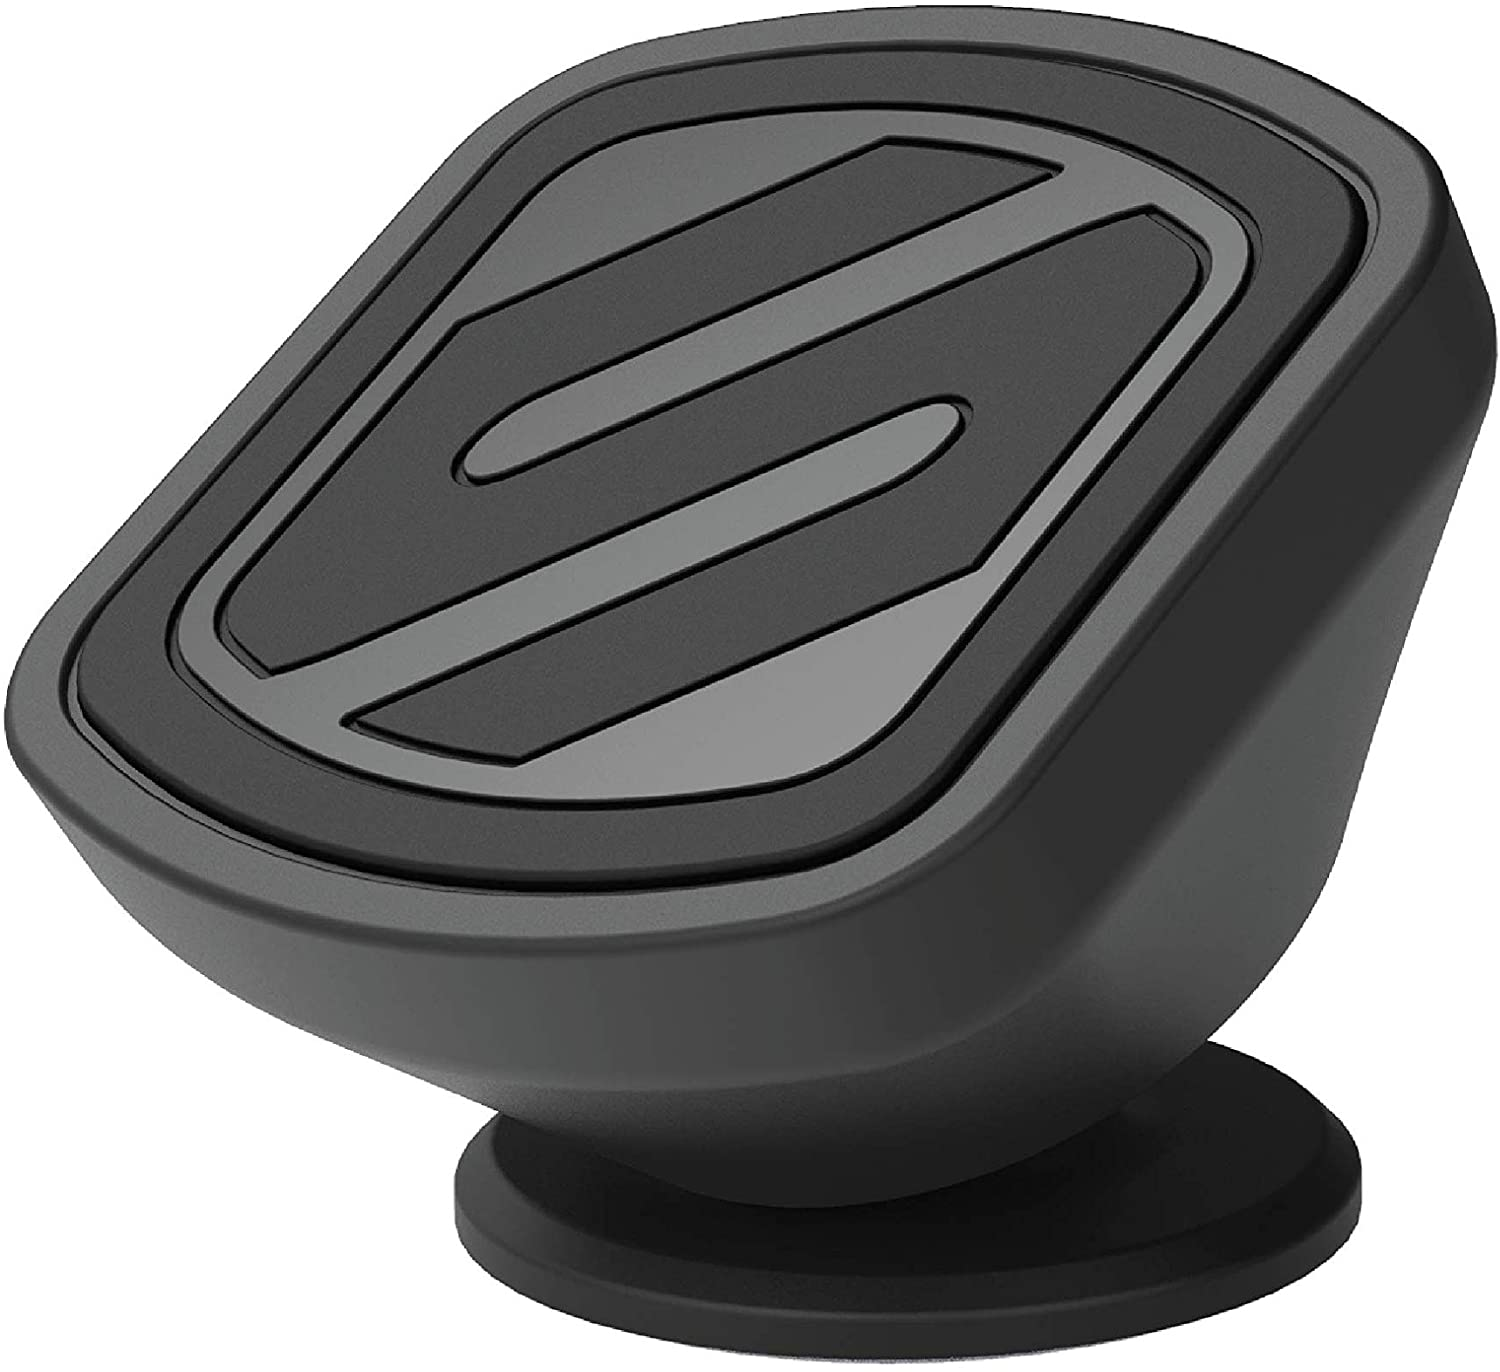 SCOSCHE MMSD-XCES0 MagicMount Select Magnetic Mini Vertical Dash Mount Holder for Mobile Devices, Black